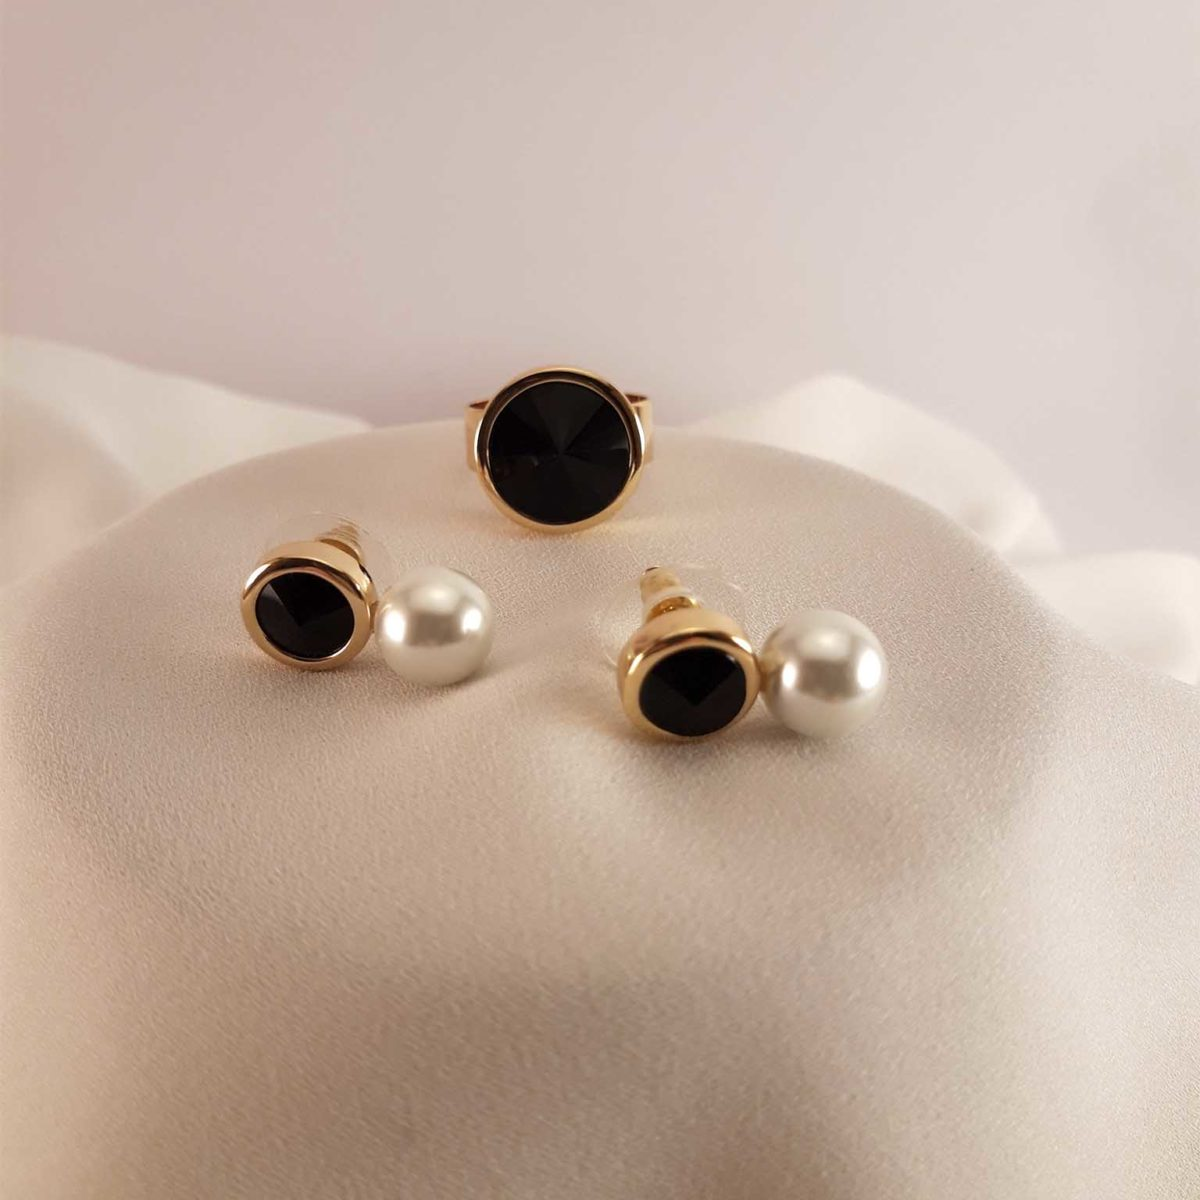 Black Earrings And Ring With Black Glitter